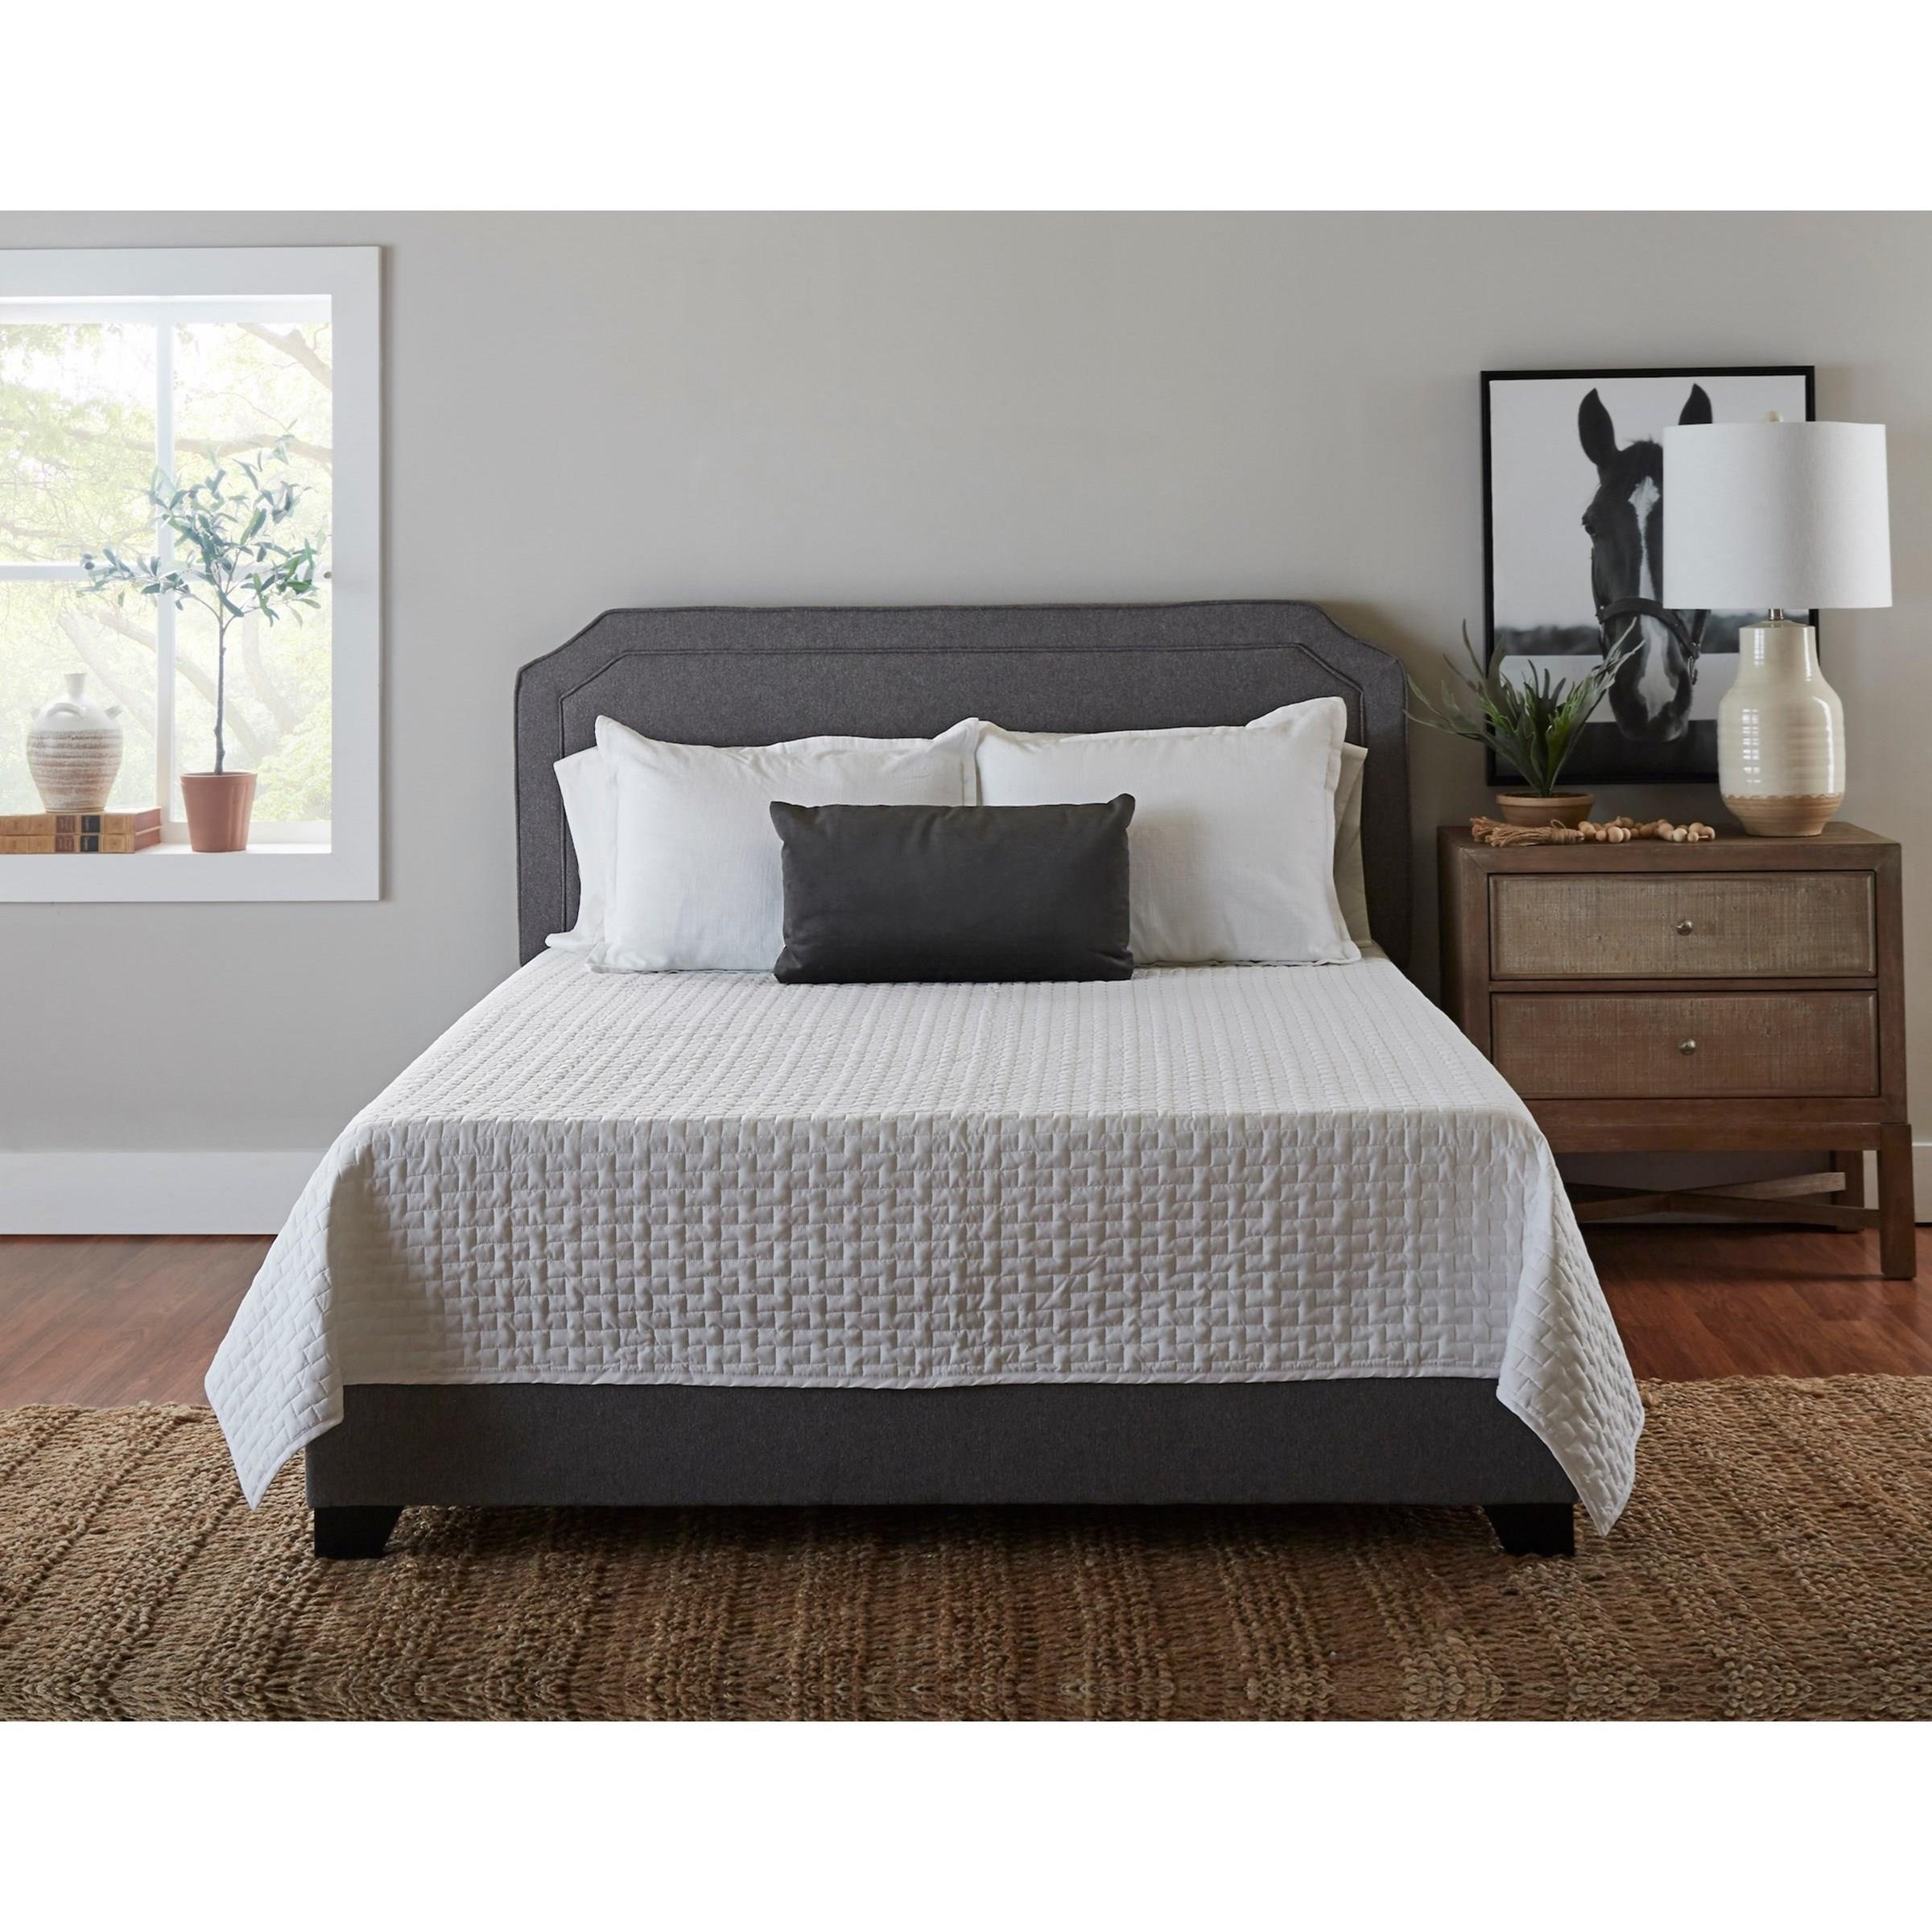 Possibilities - 294 King Upholstered Bed by Klaussner International at Powell's Furniture and Mattress